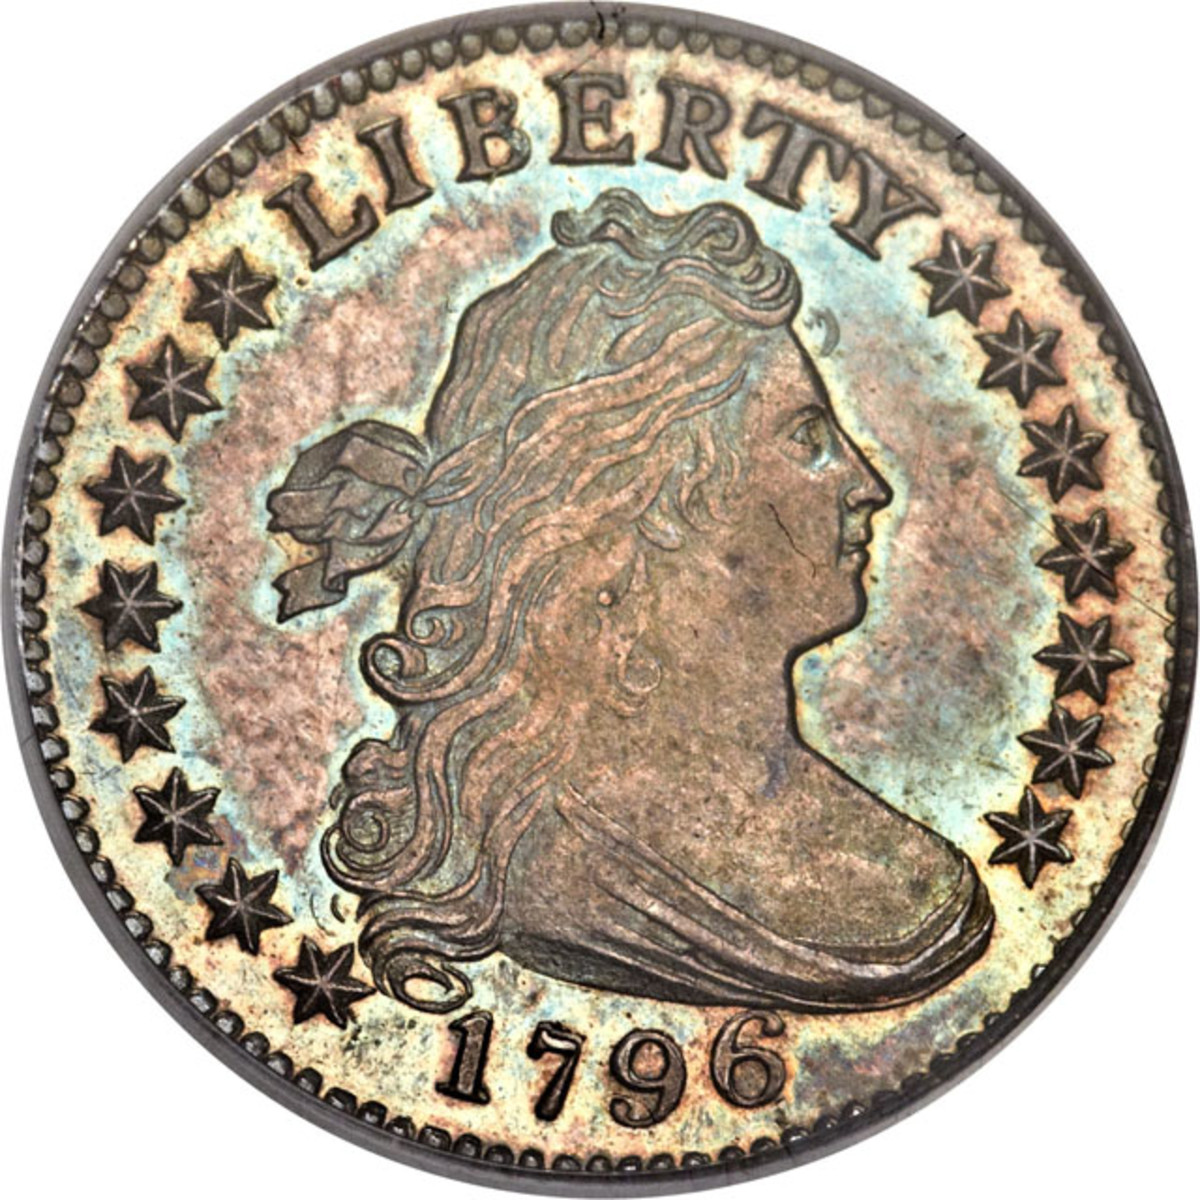 Obverse of the 1796